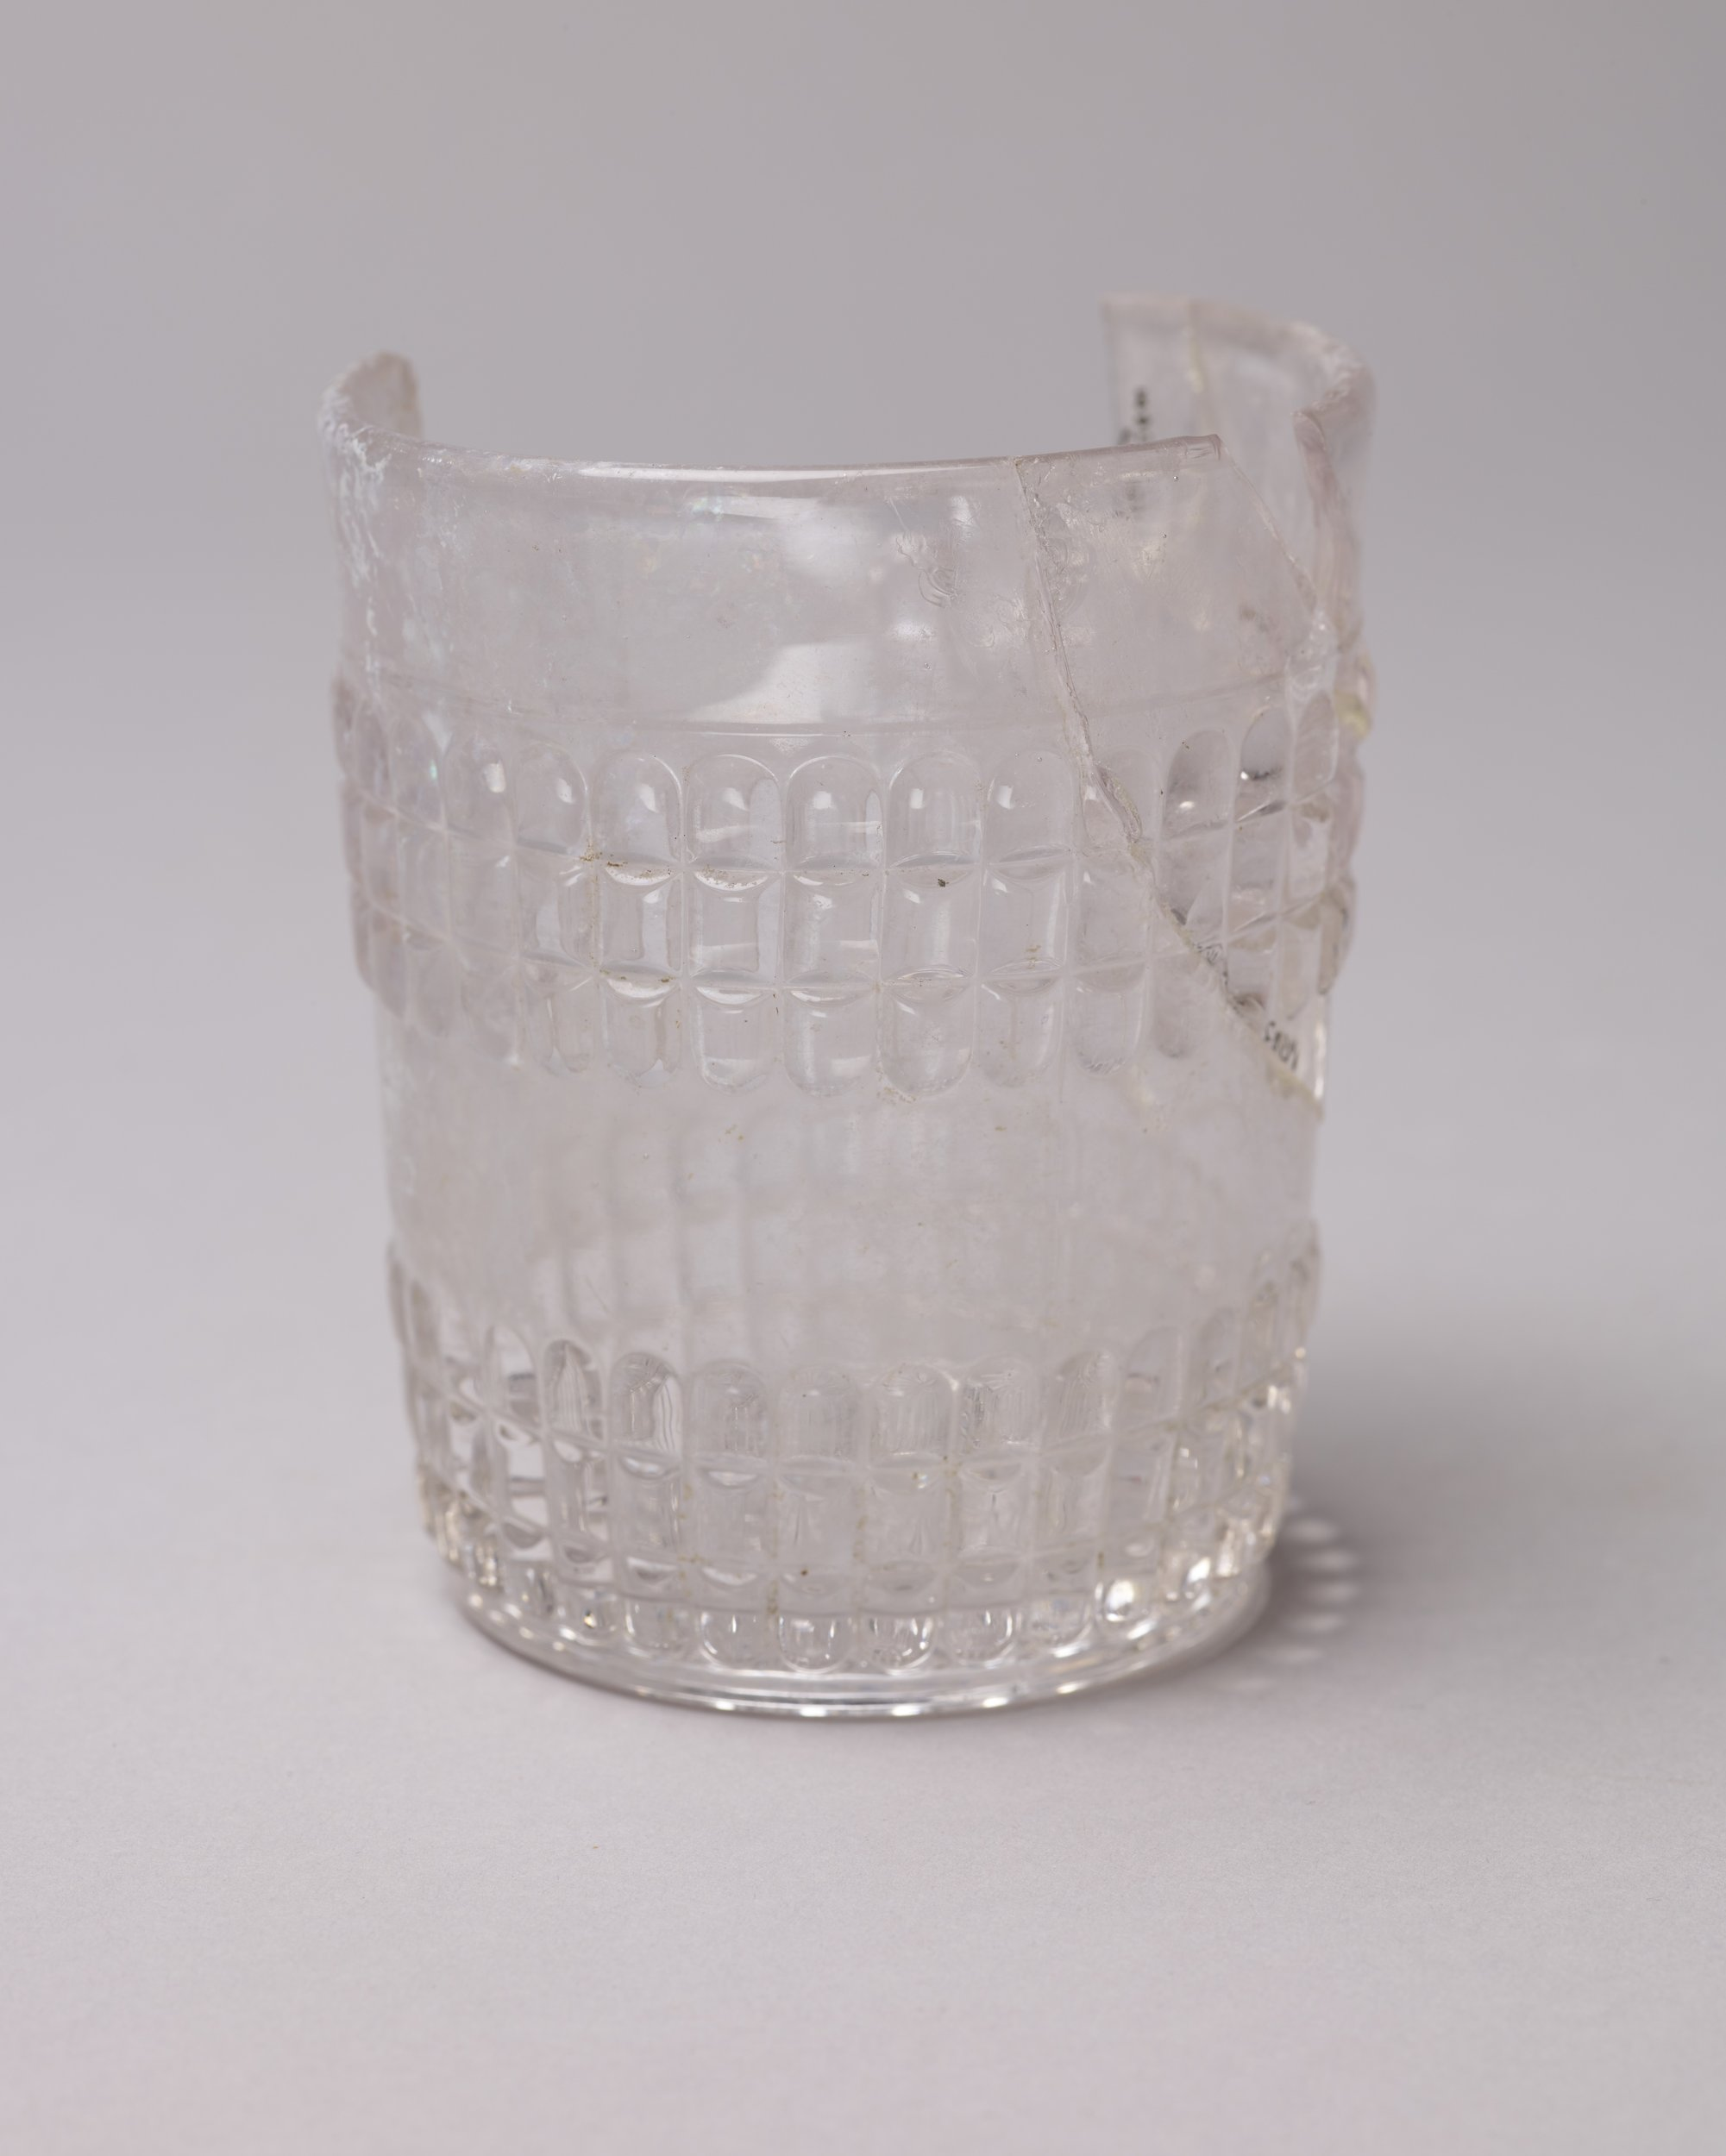 Tumbler from Cottonwood Ranch, 14SD327 - 1